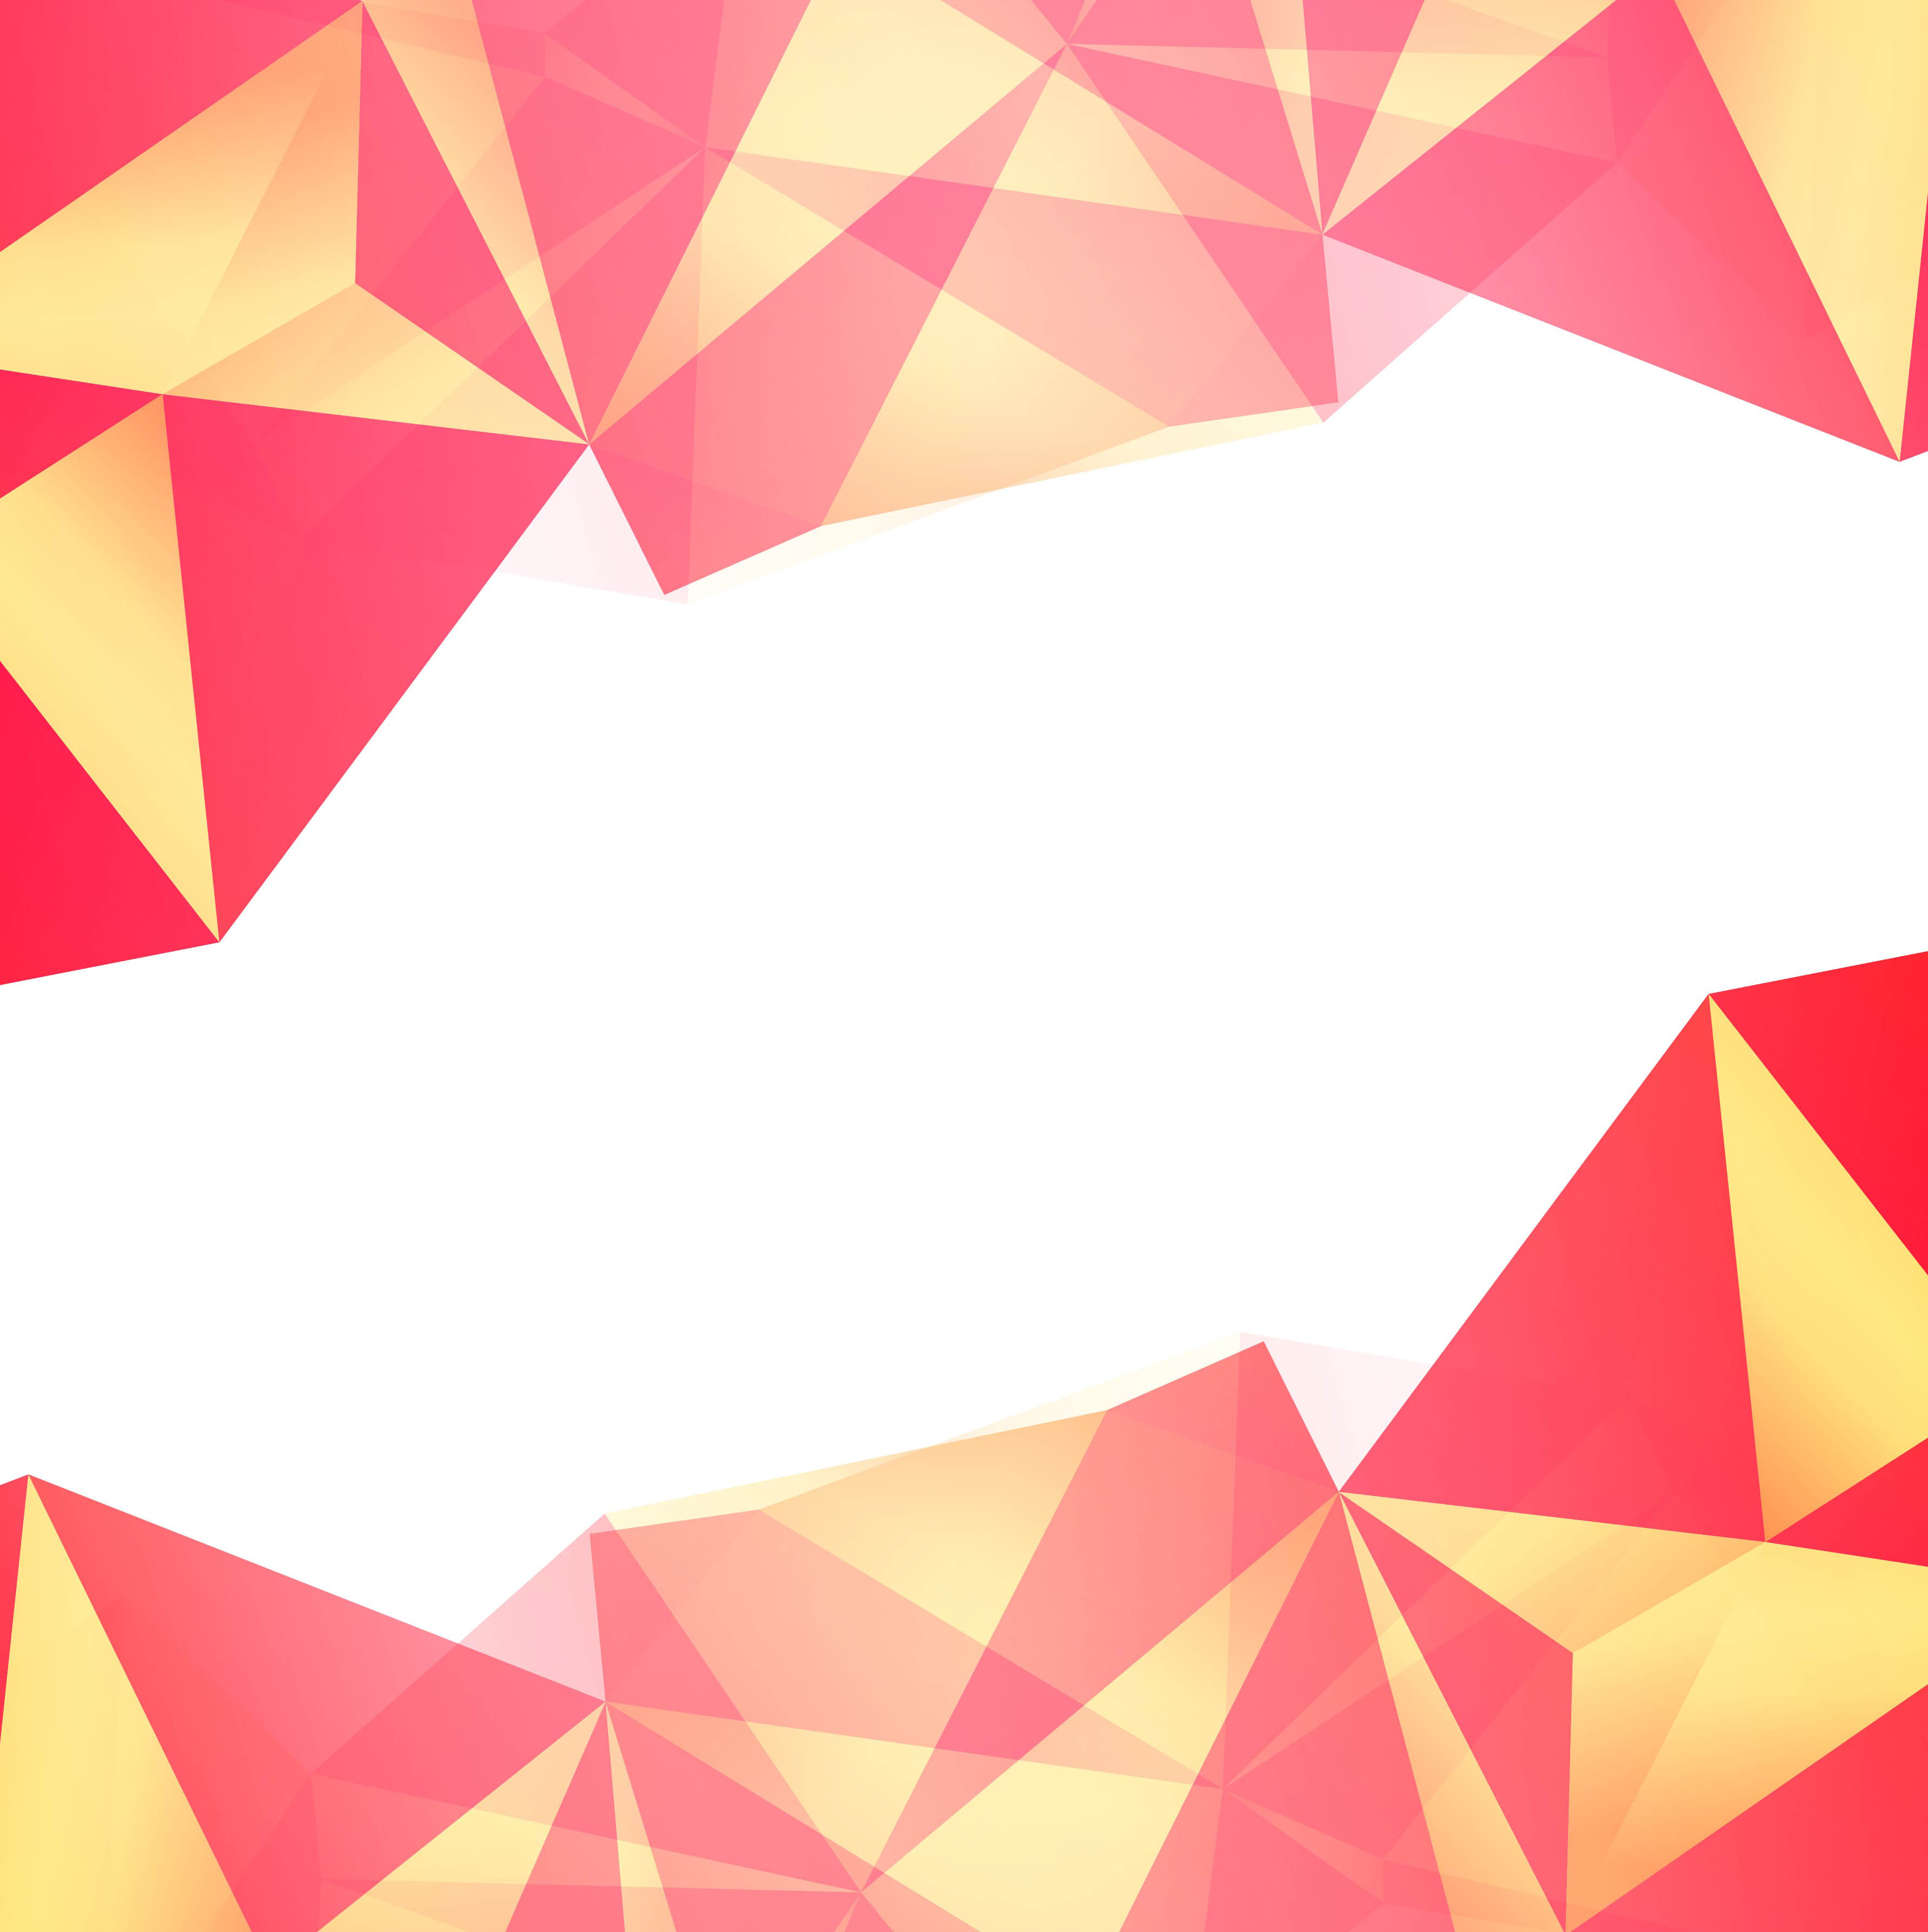 Abstract colorful polygon background vector - Download ...